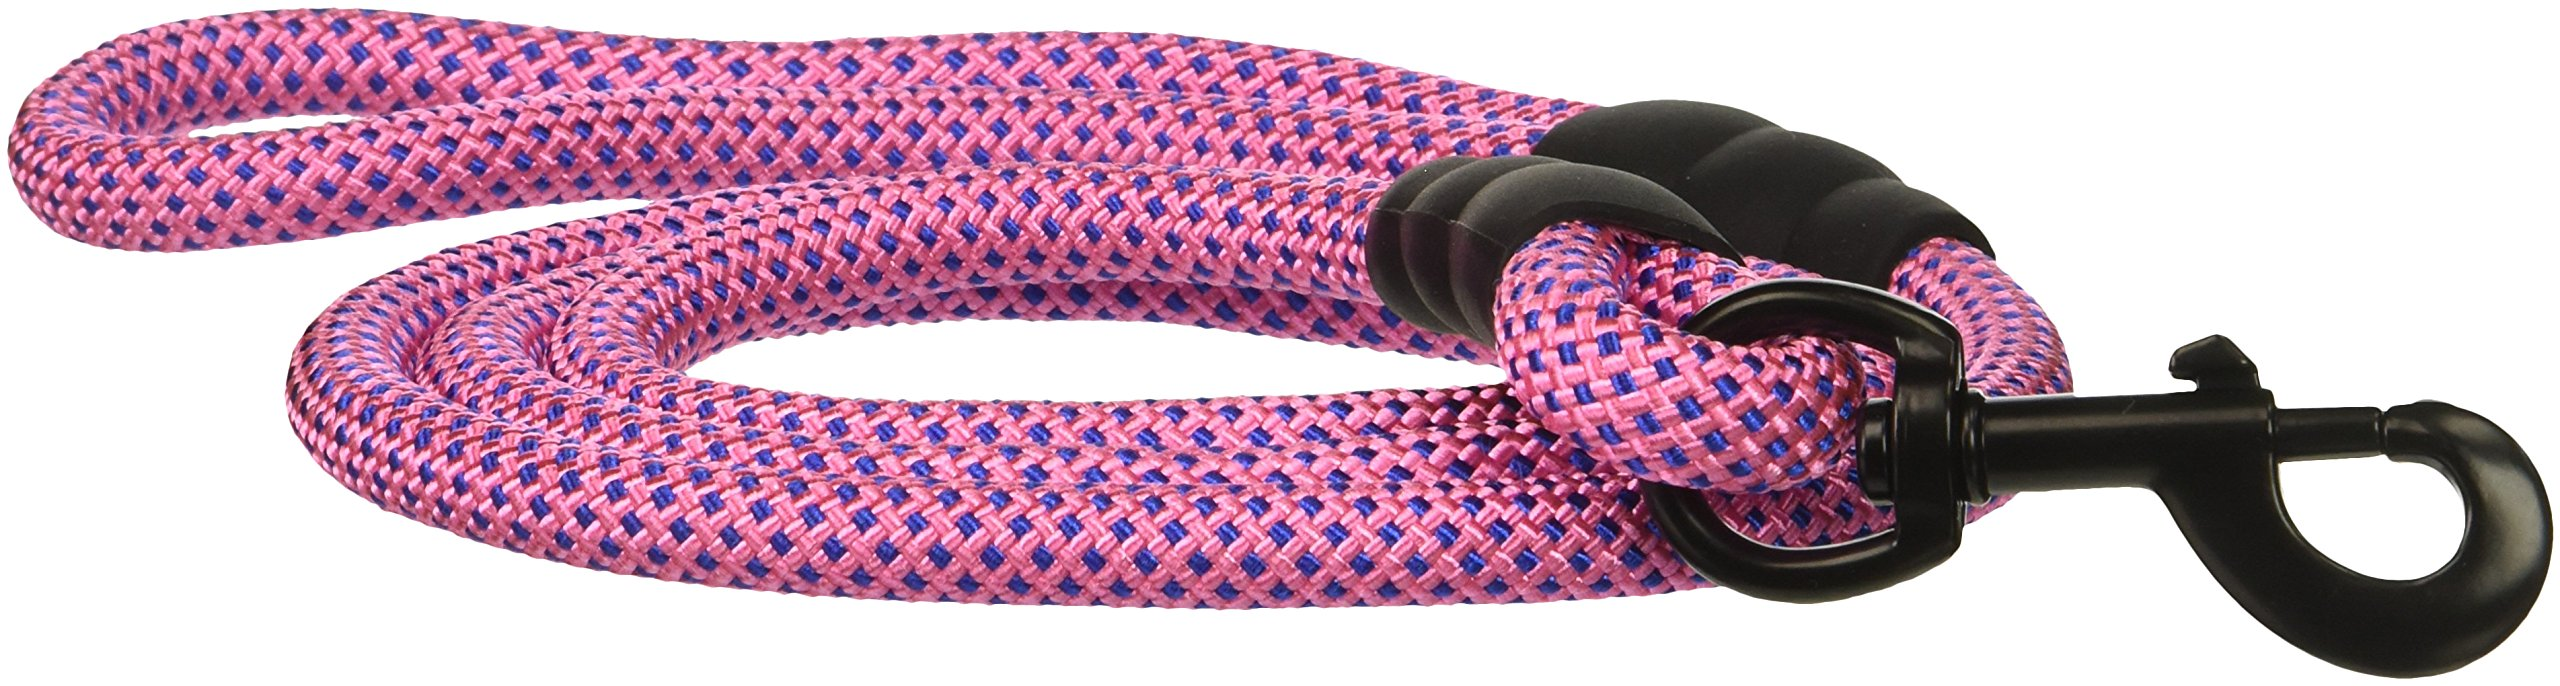 PetsCare Dog Leash Rope Quality Extra Thick Nylon Rope, Soft Handle and Light Weight Pet Training Lead, for Medium/Large Dogs, Black